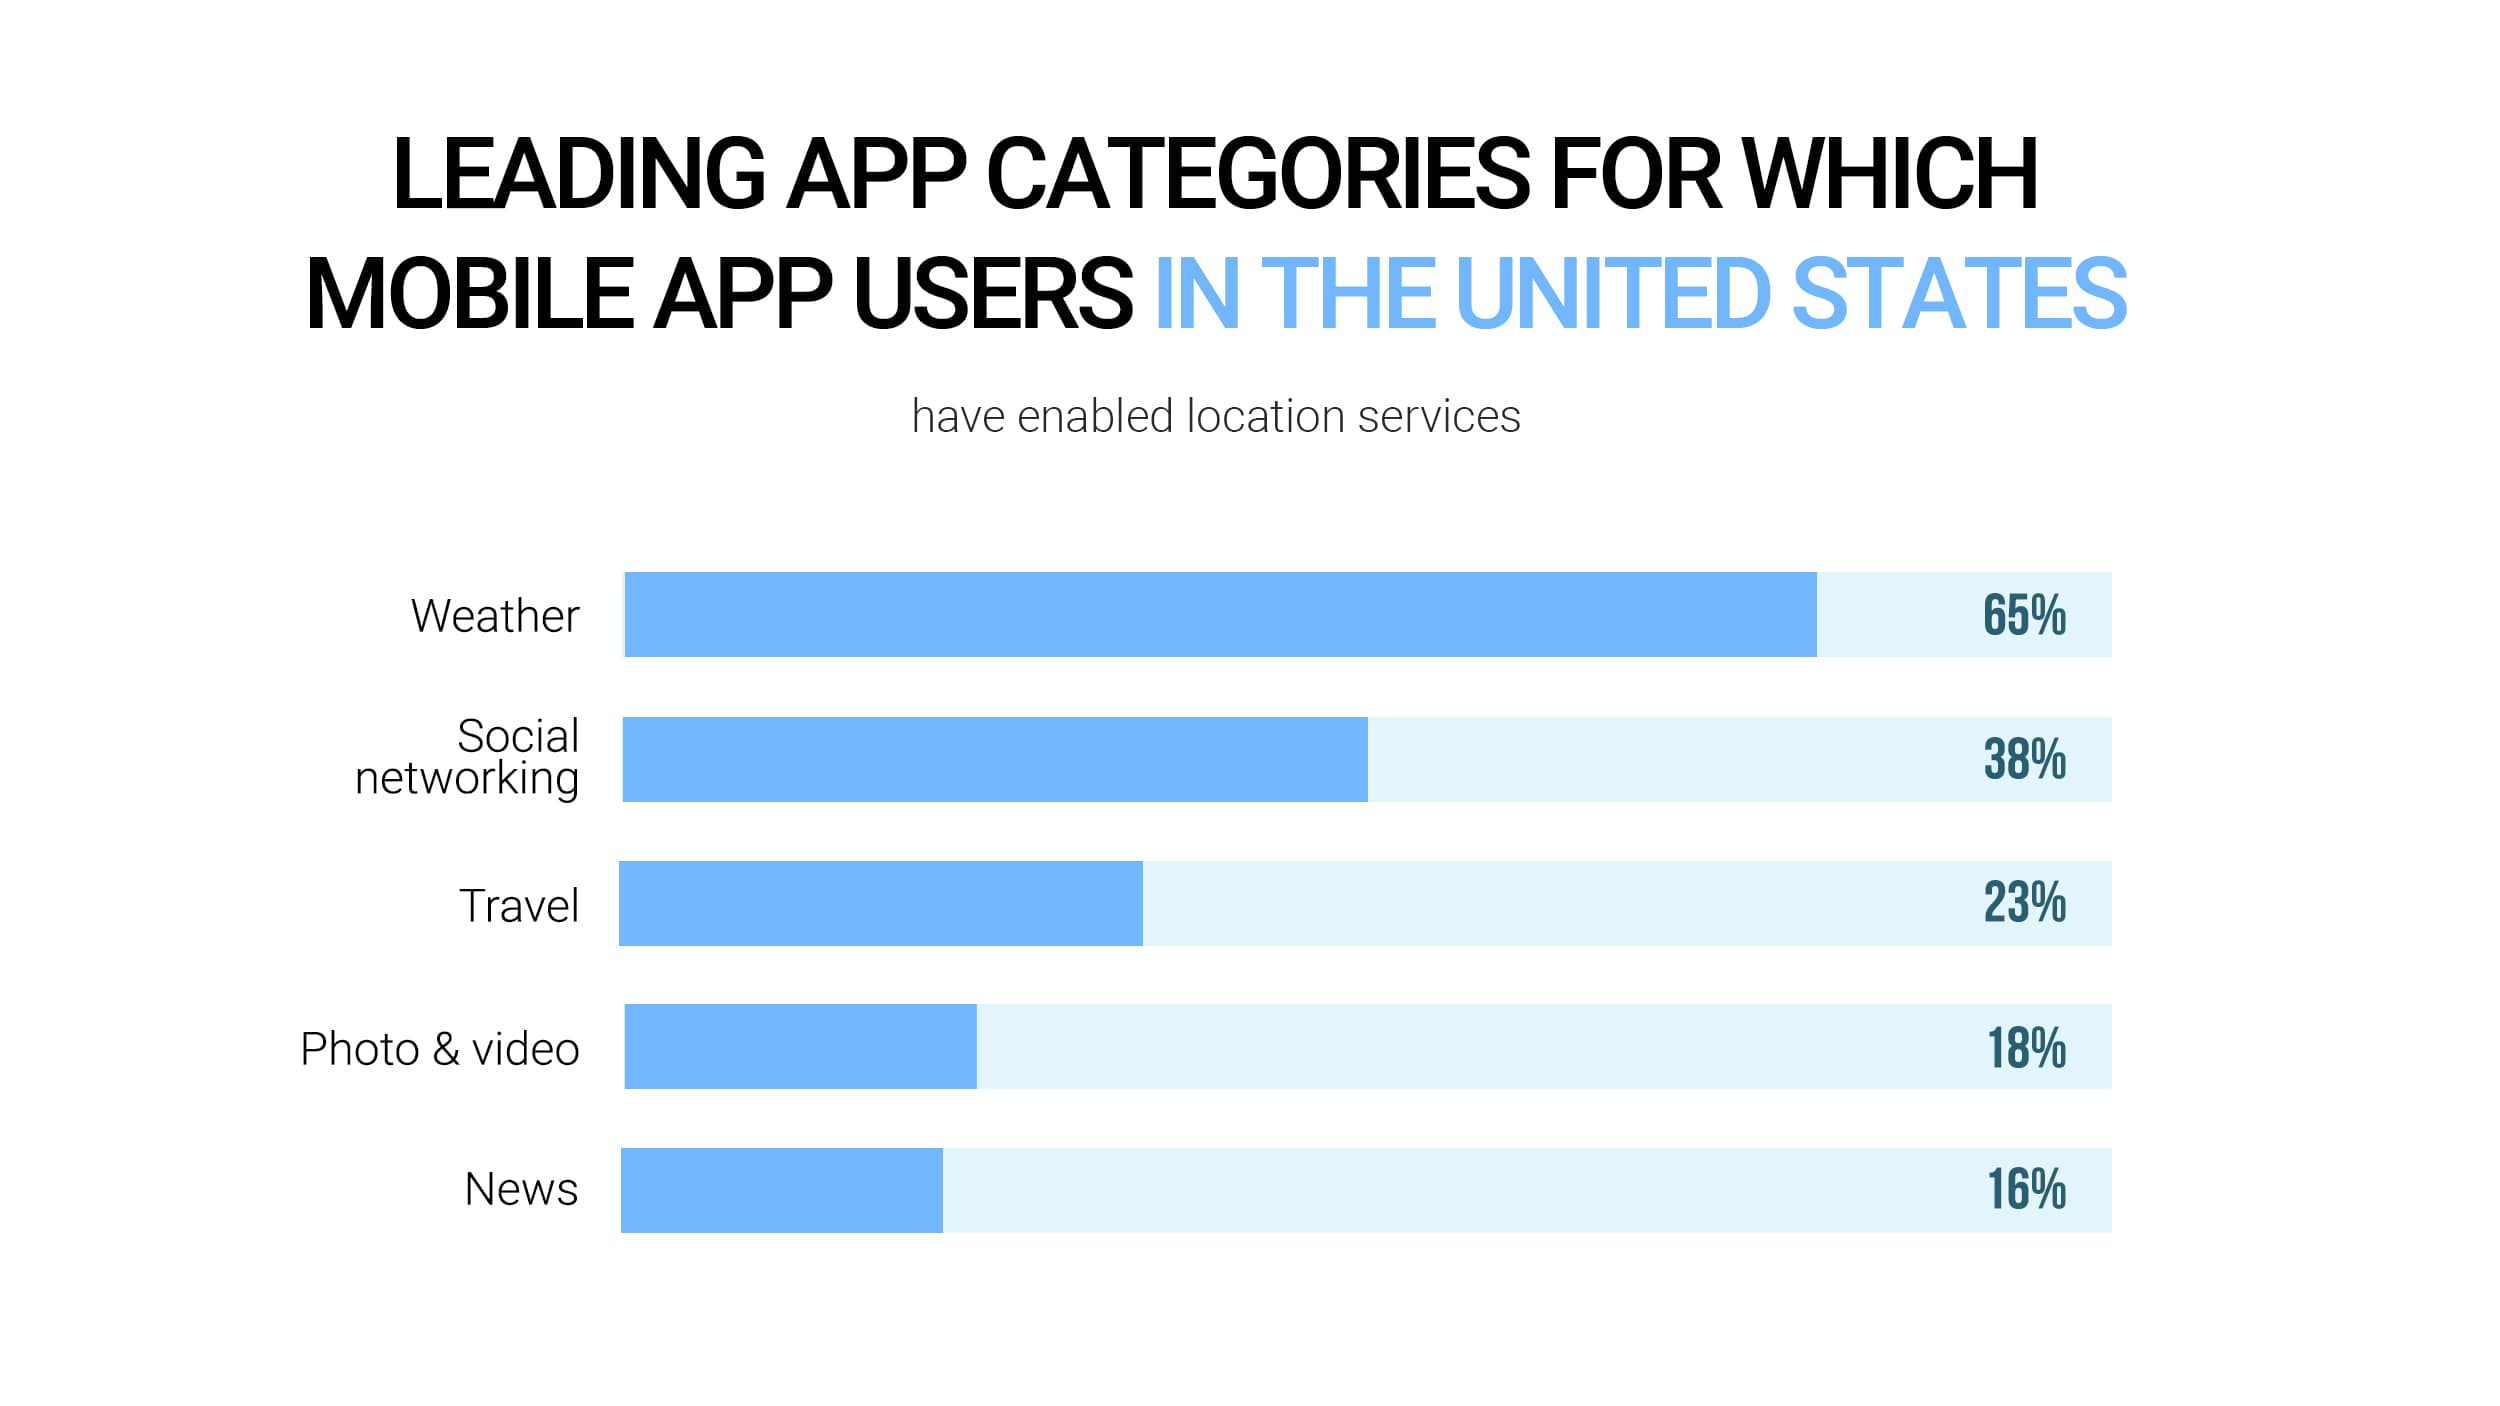 Leading app categories for which mobile app users in the United States have enabled location services